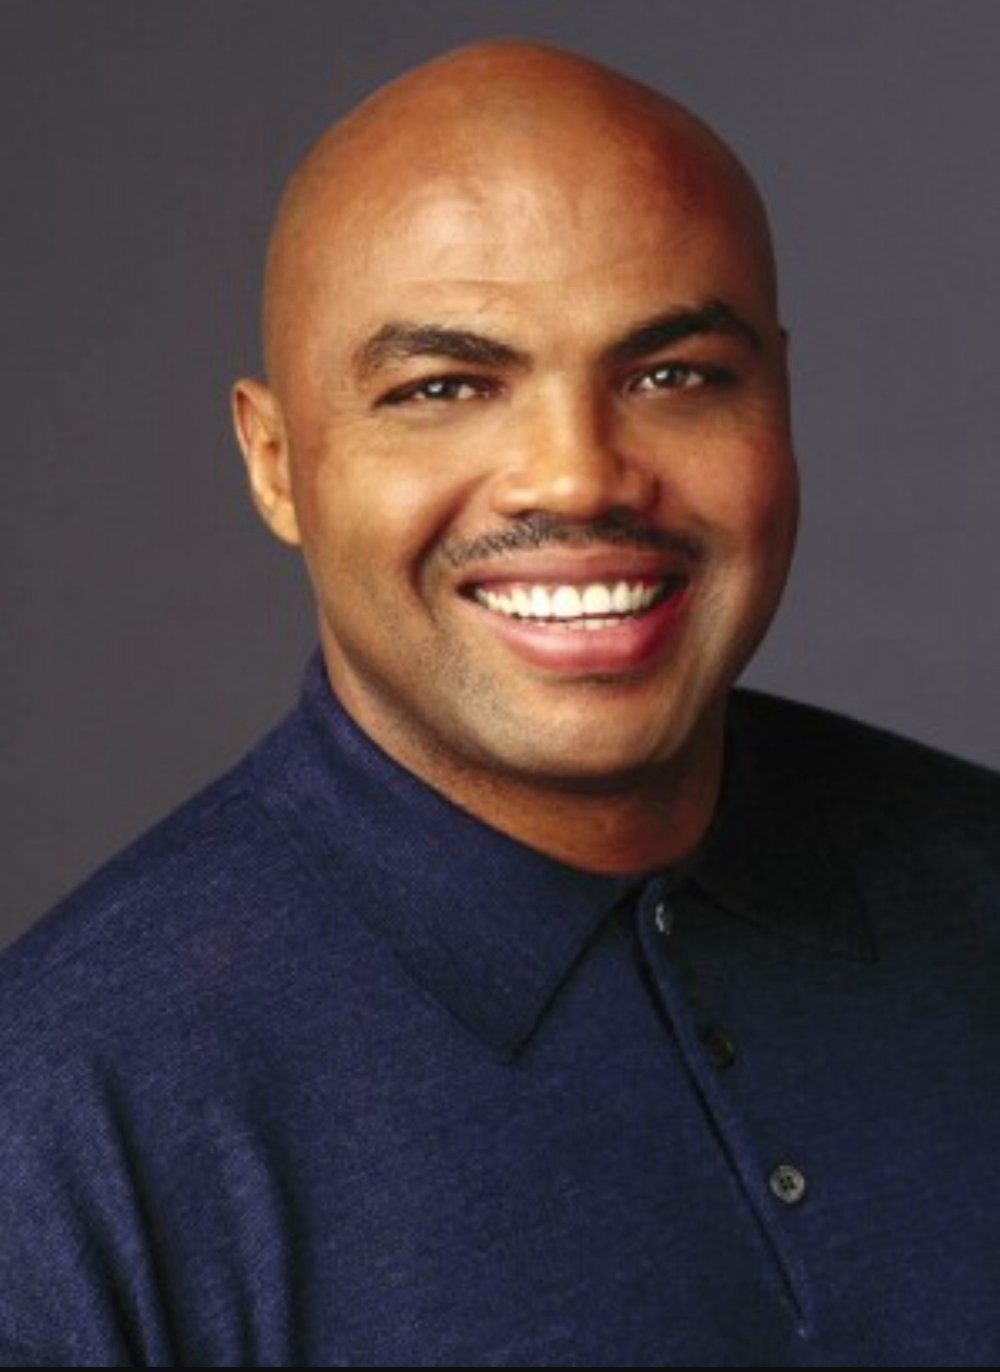 Charles Barkley  Hepp on Barkley:   If you don't agree with Barkley's commentary, it's because you're wrong. He is on point in his analysis of players in basketball and other sports. Aside from his brilliant insight on the psychology of sports, he is very entertaining and funny. It's easy to see why the greats like MJ, Magic, Bird, etc love this guy.